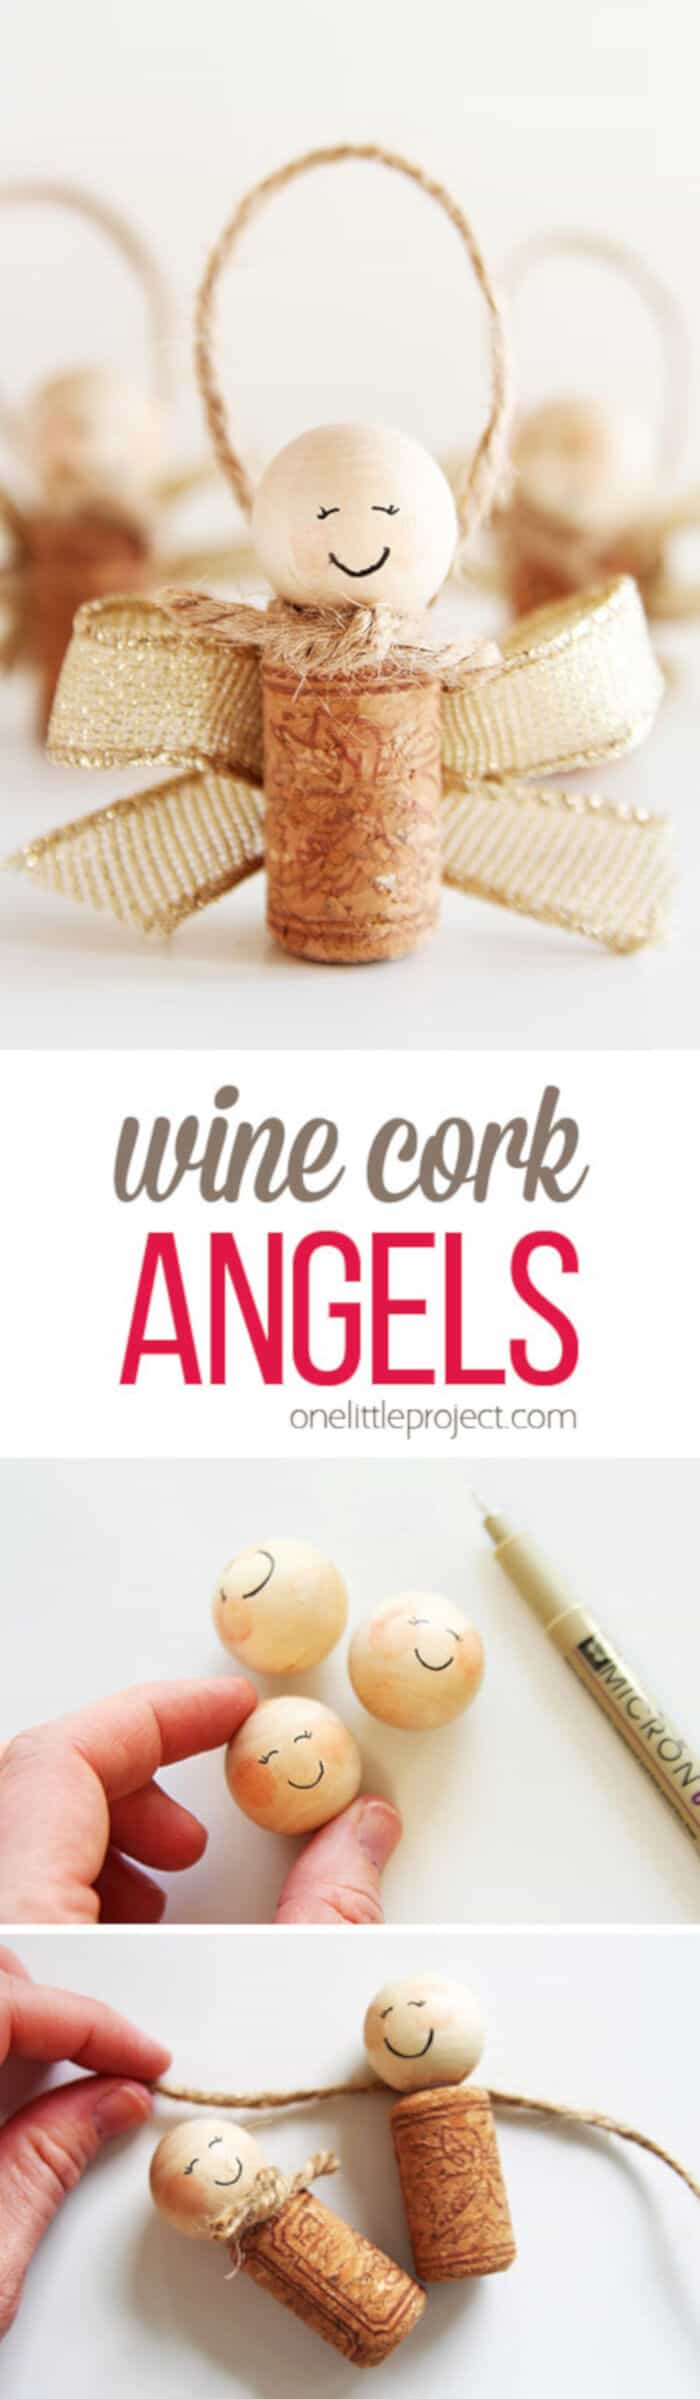 Wine Cork Angels by One Little Project